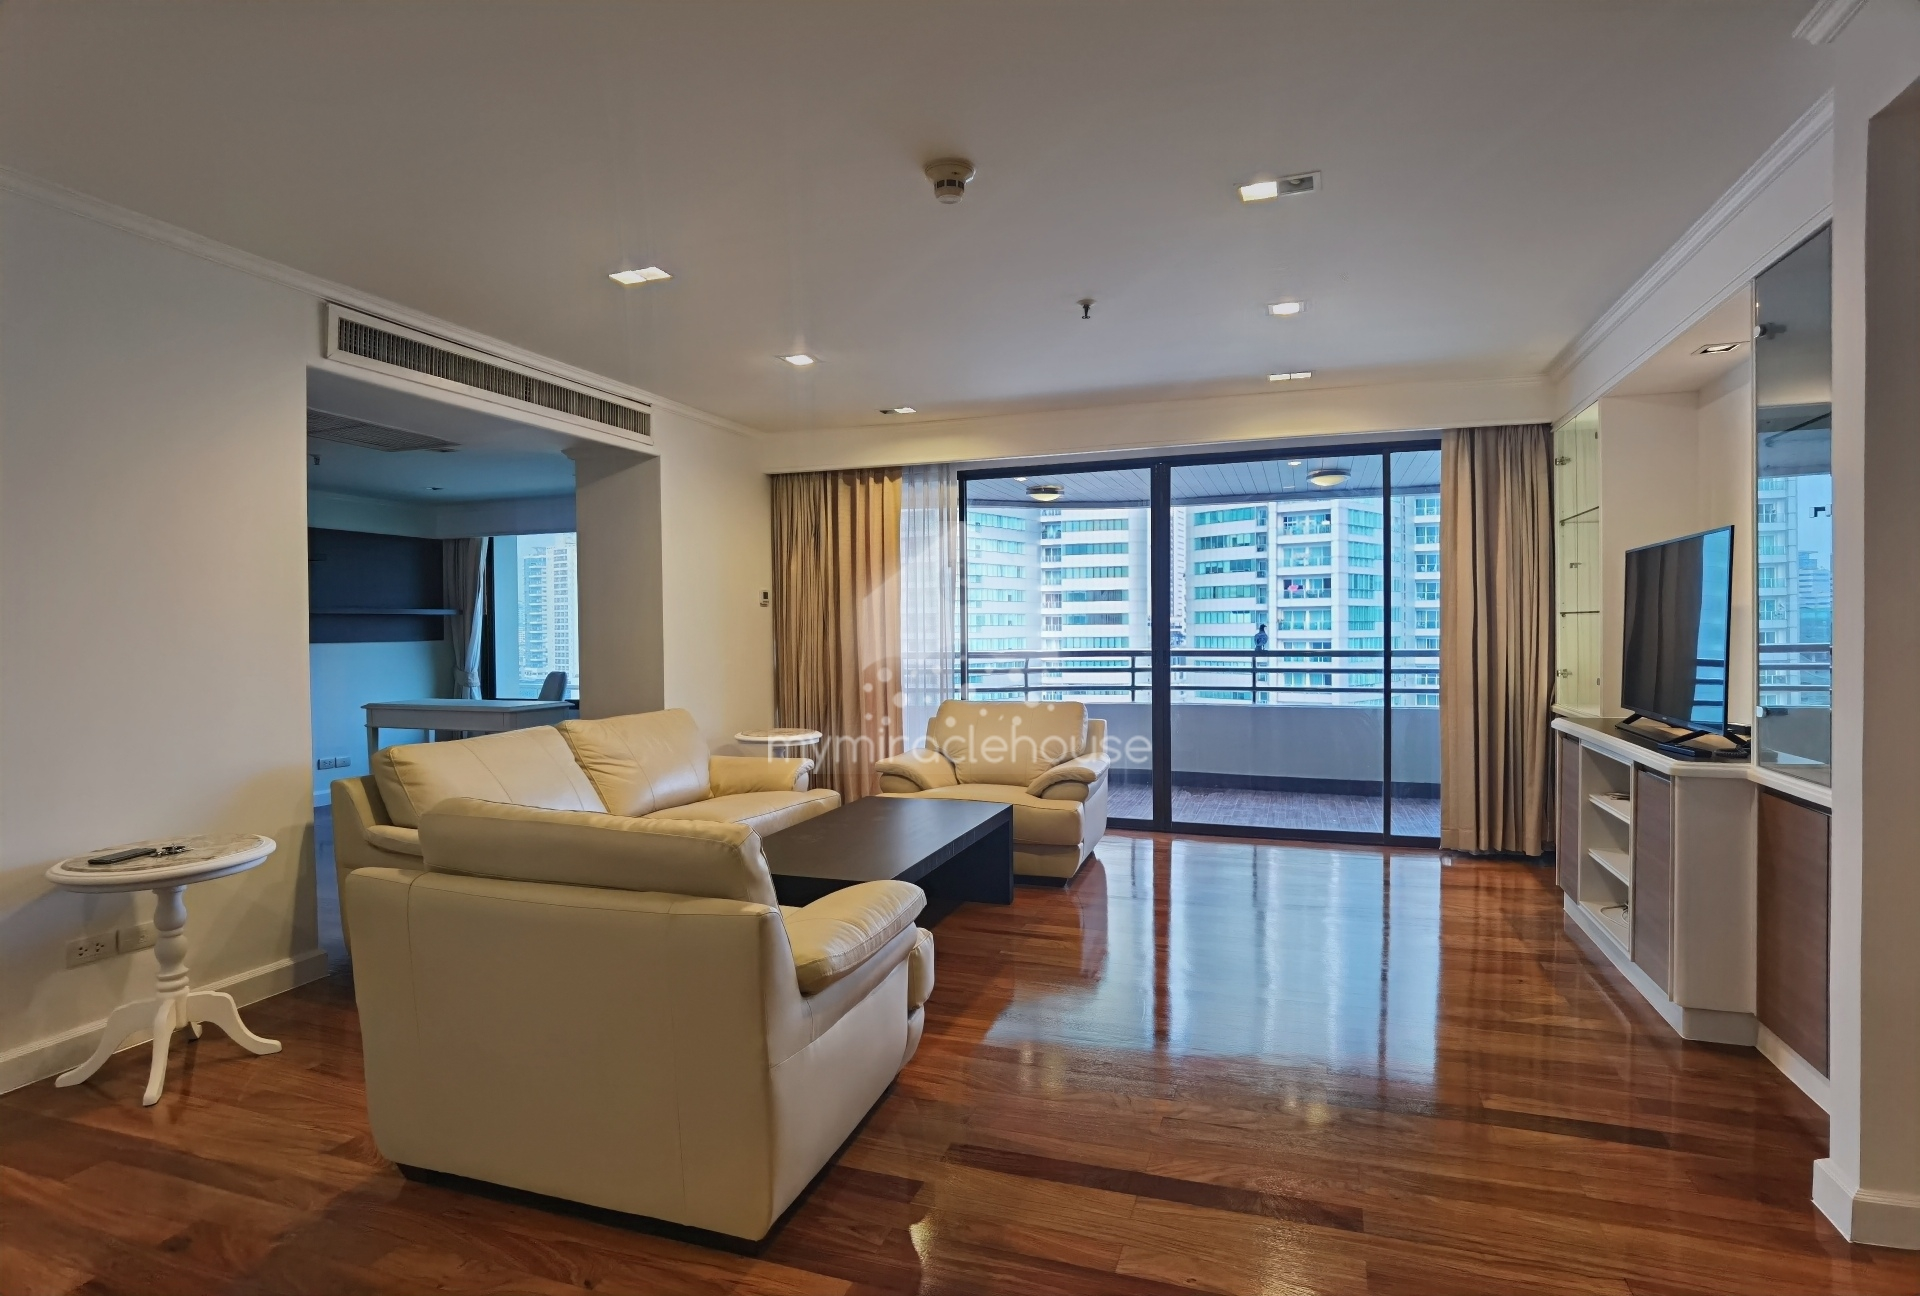 Fully-Furnished 3 Bedrooms With Study Area For Rent In Asoke.